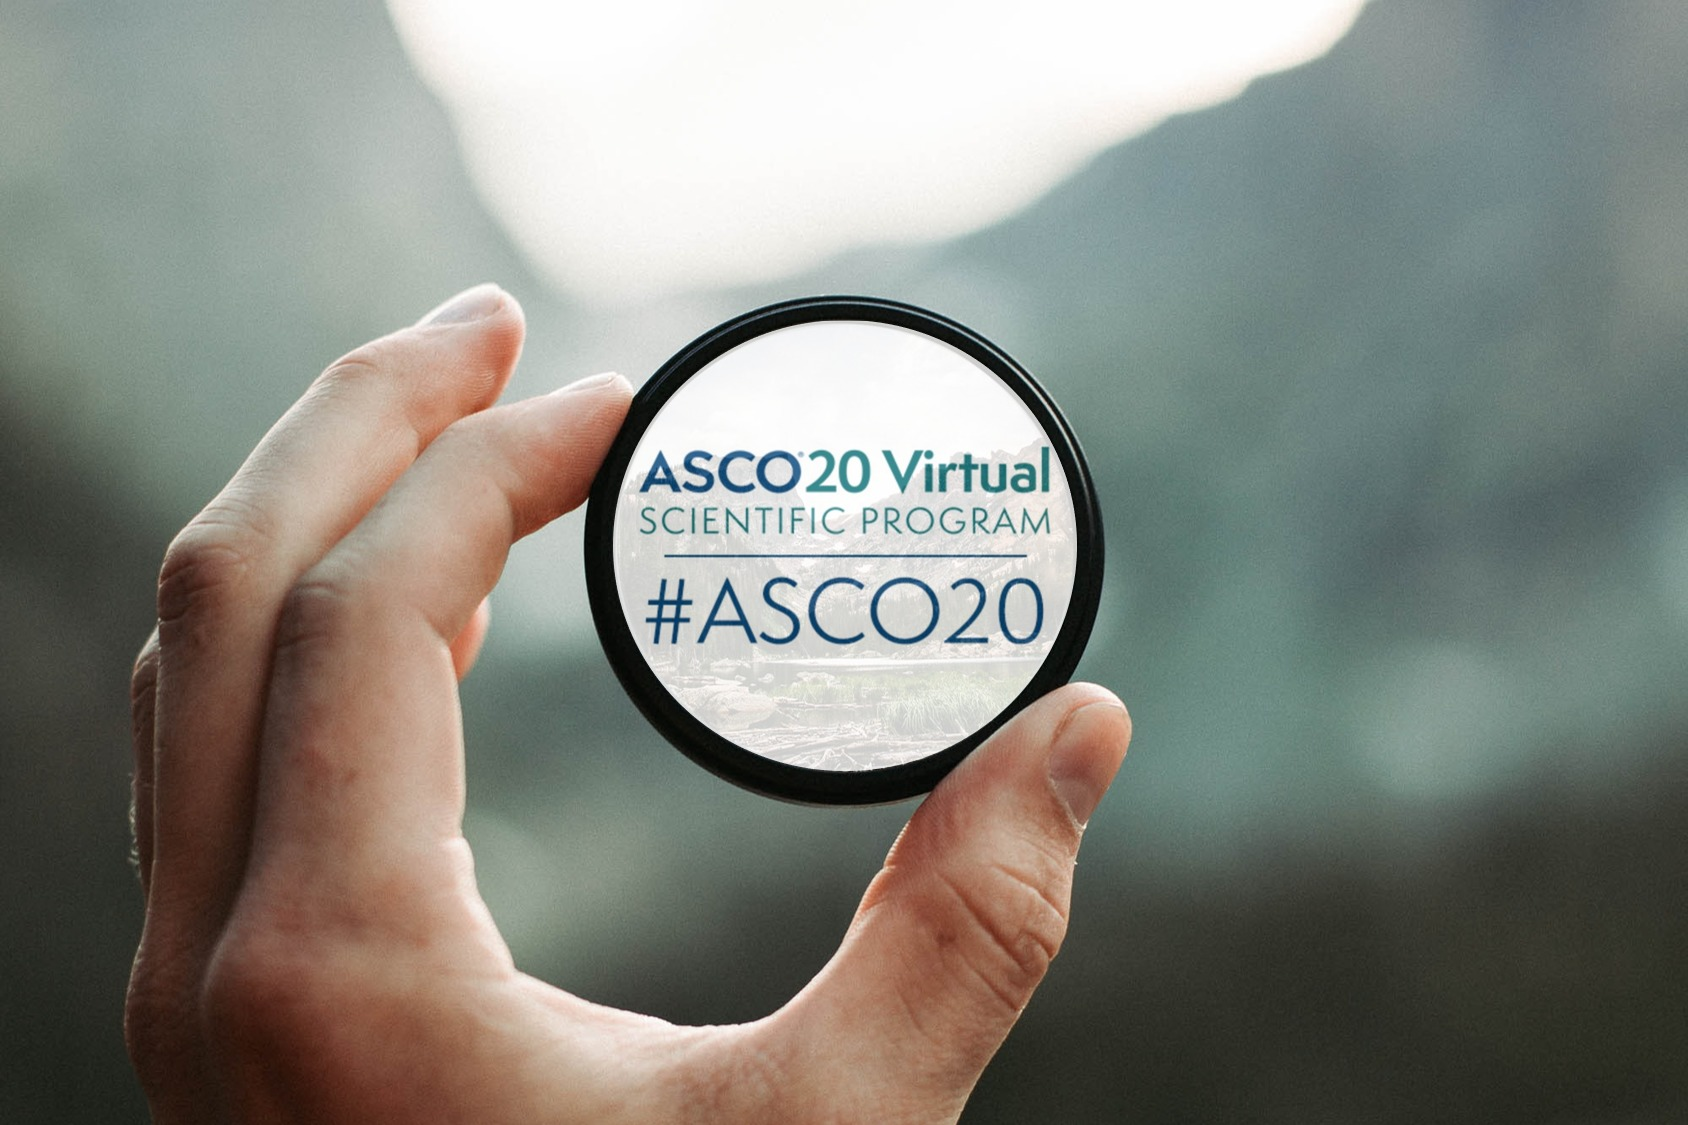 ASCO 2020 9 highlights of therapeutic strategies in oncology.jpg